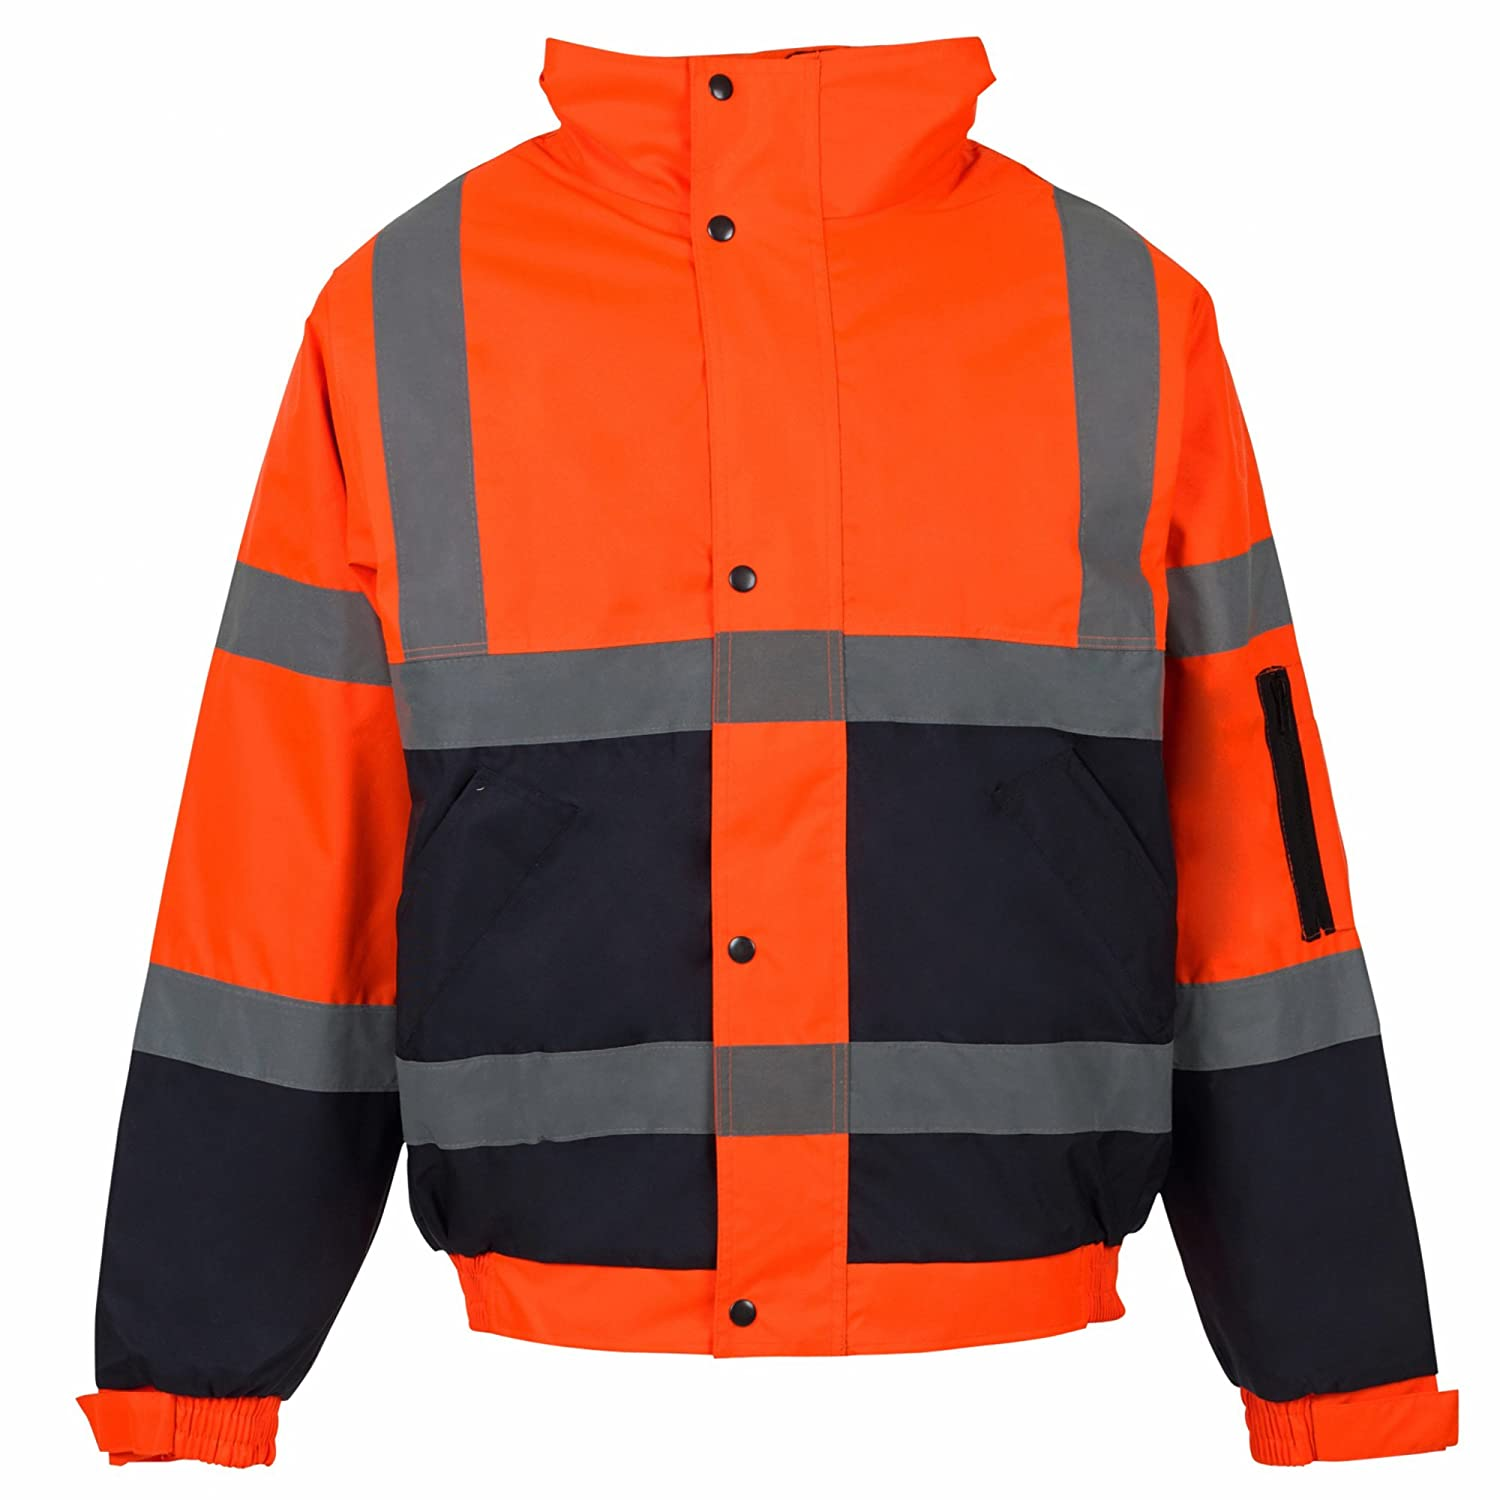 MyShoeStore® HI VIS VIZ HIGH VISIBILITY BOMBER JACKET WORK WEAR ...